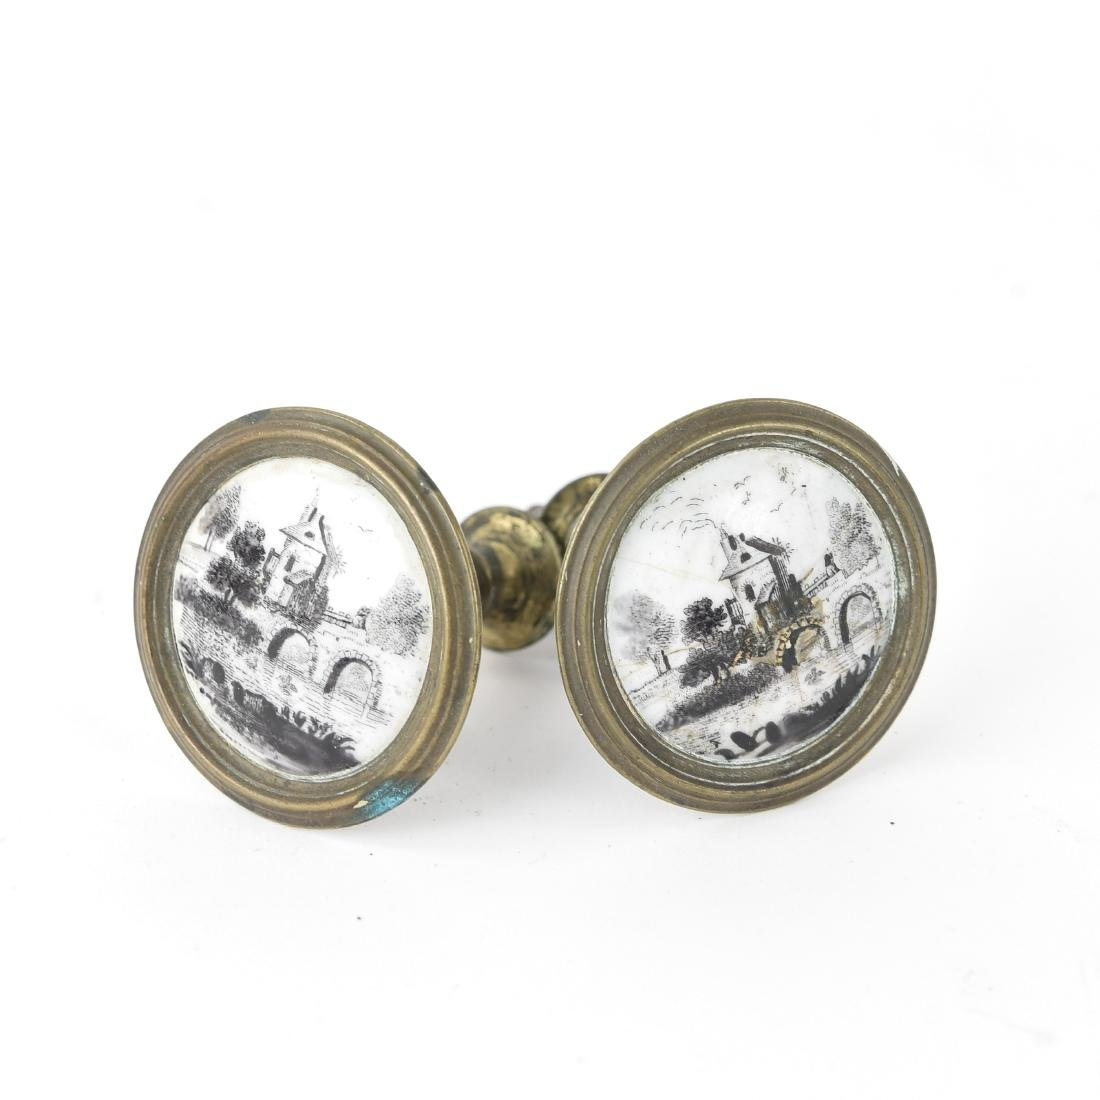 (2) PAINTED PORCELAIN AND BRASS TIE BACK KNOBS